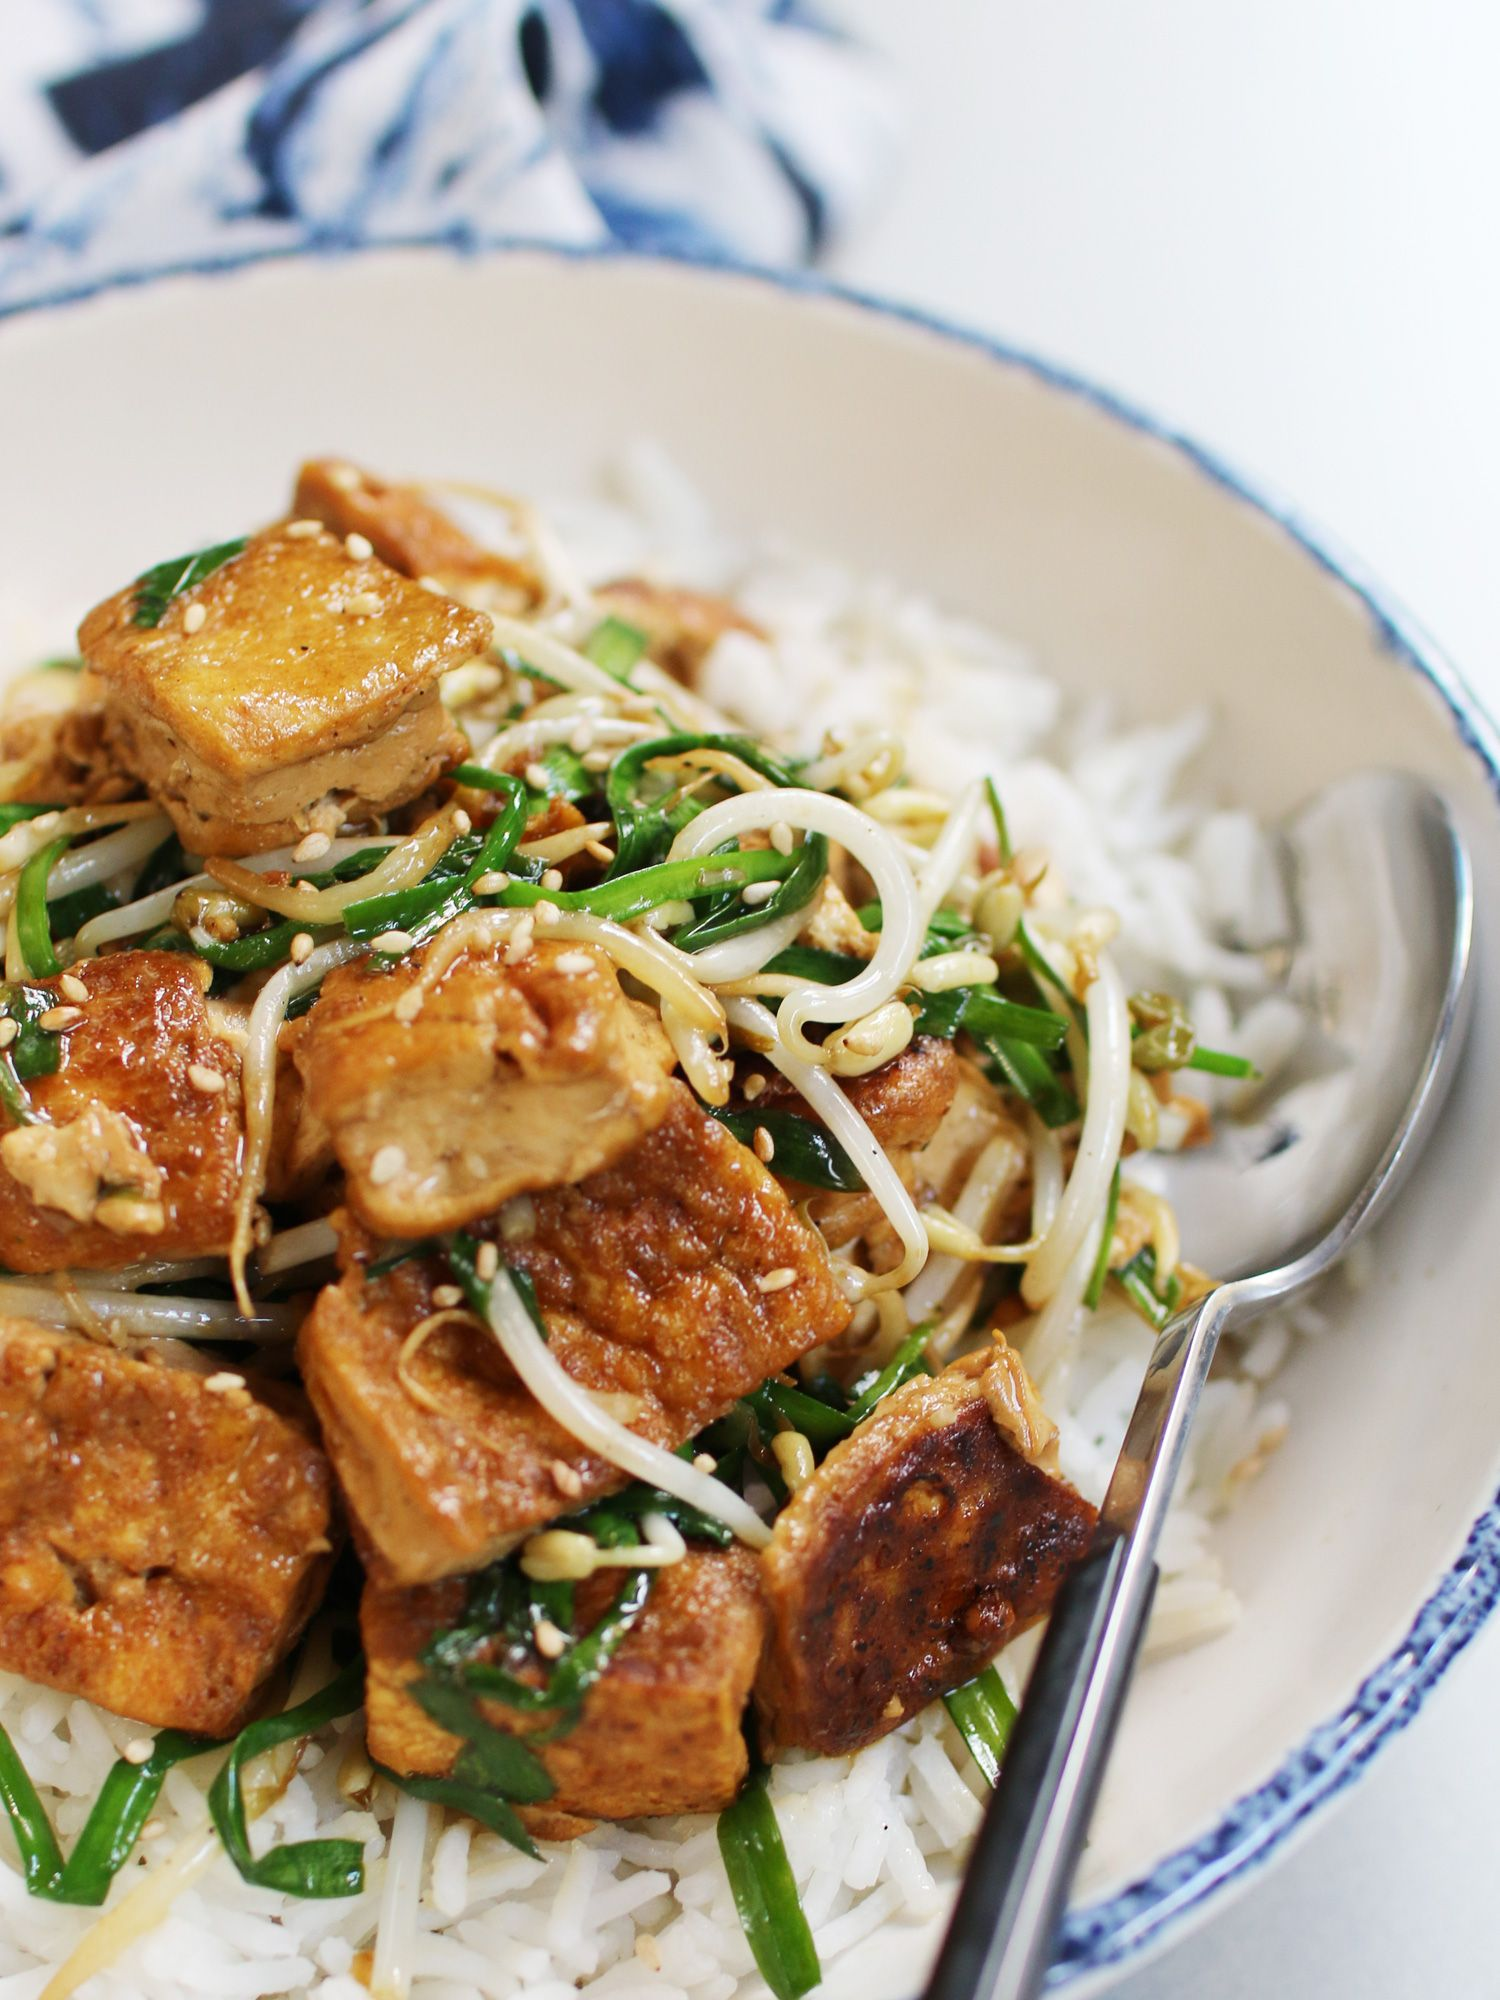 Stir Fried Tofu With Bean Sprouts And Chinese Chives